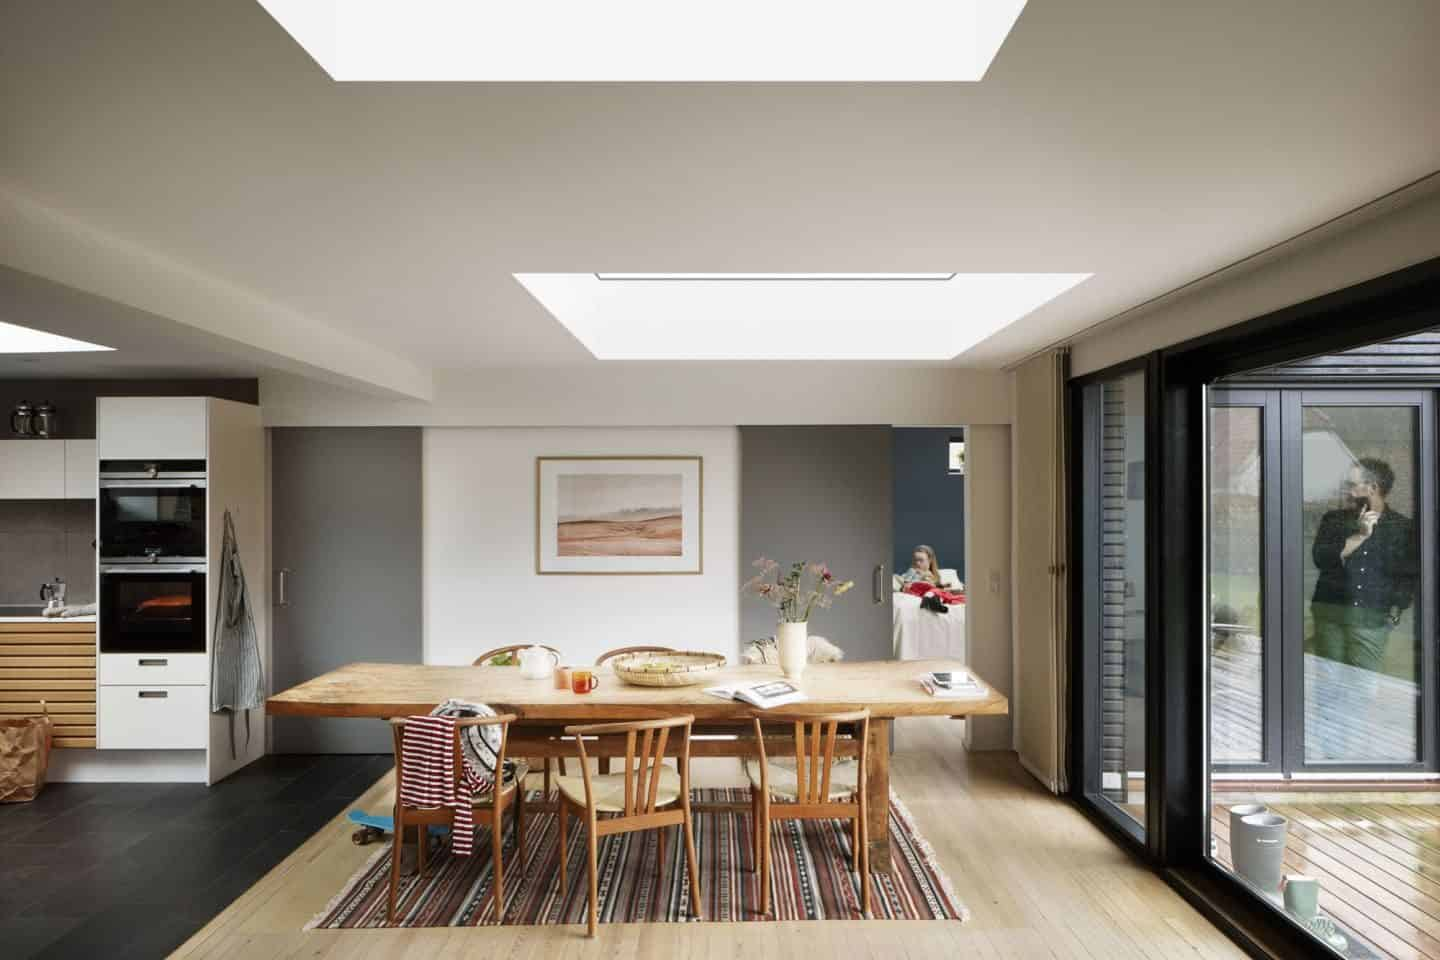 Vario by VELUX Bespoke Flat Roof Windows pictured above a large wooden dining table